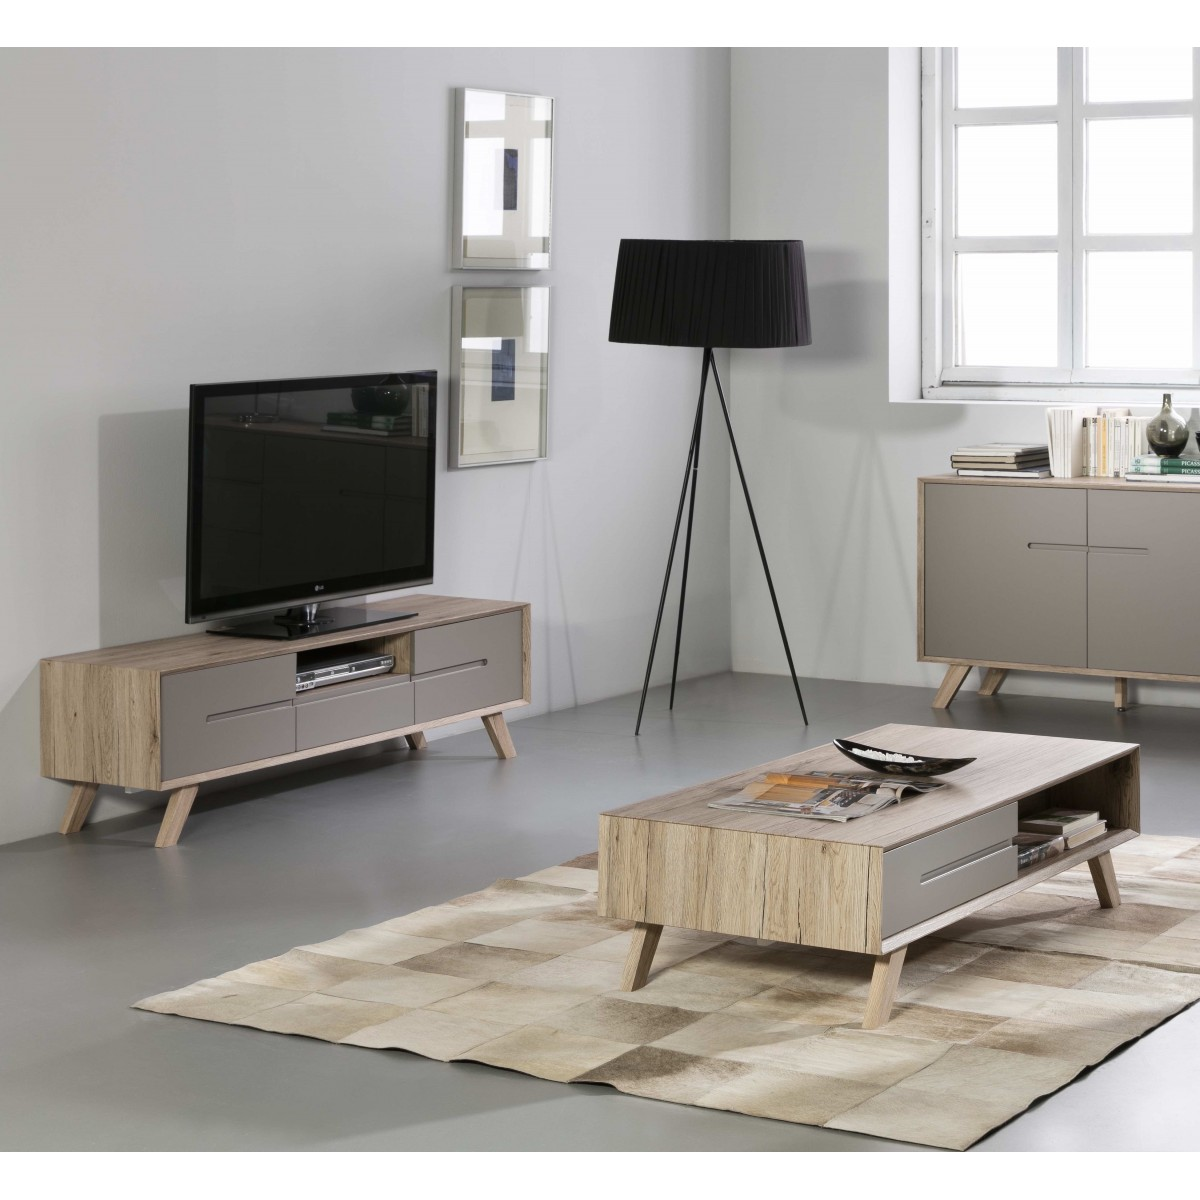 Promo Meuble Tv Promo Pack Meuble Tv 43 Table Basse Olie Taupe